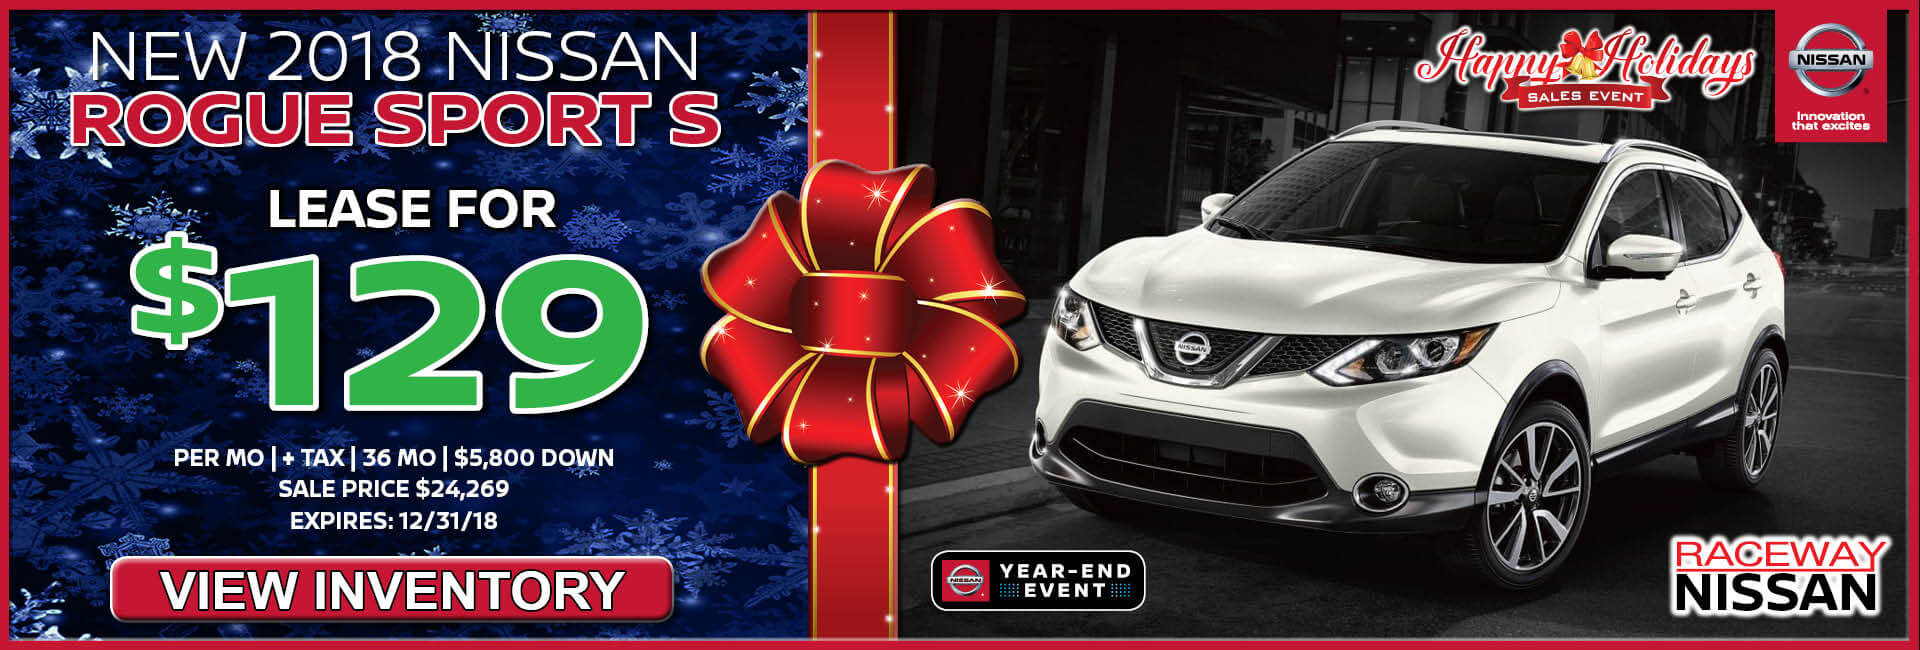 Nissan Rogue Sport $129 Lease